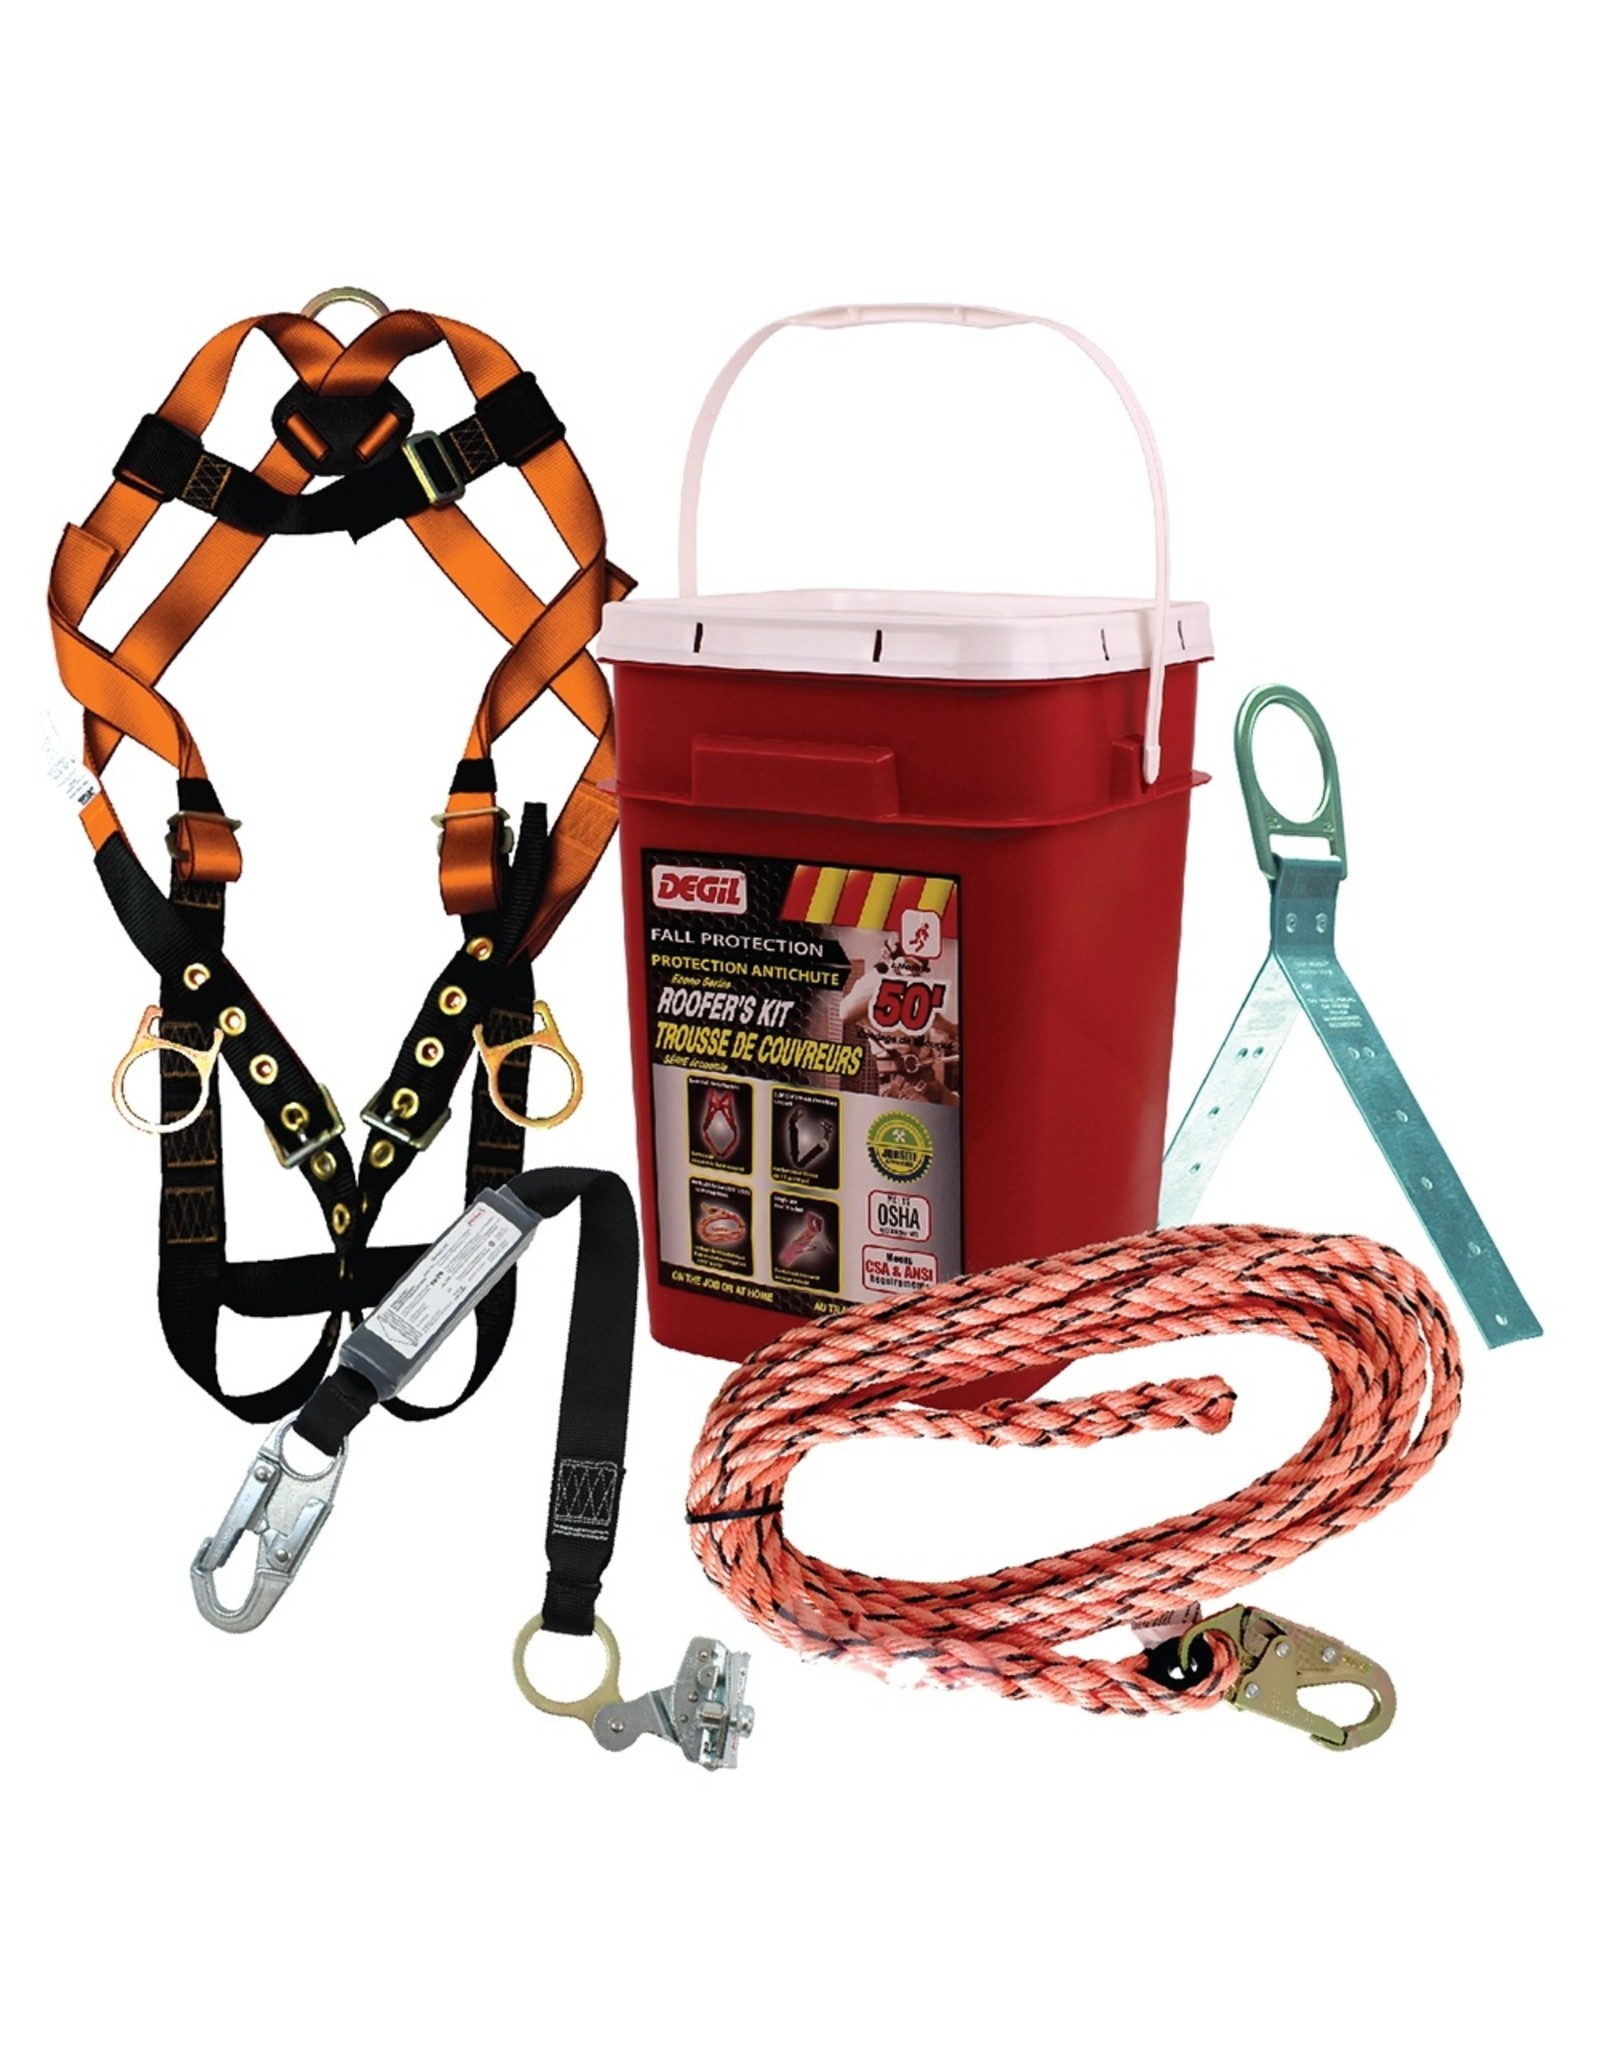 """Roofer Kit complete with: 50ft lifeline with 3/4"""" snaphook, sliding rope grab with integrated energy absorber, adjustable harness w/ back D-ring and T & B legstraps, reusable hinged roof anchor, storage bucket"""